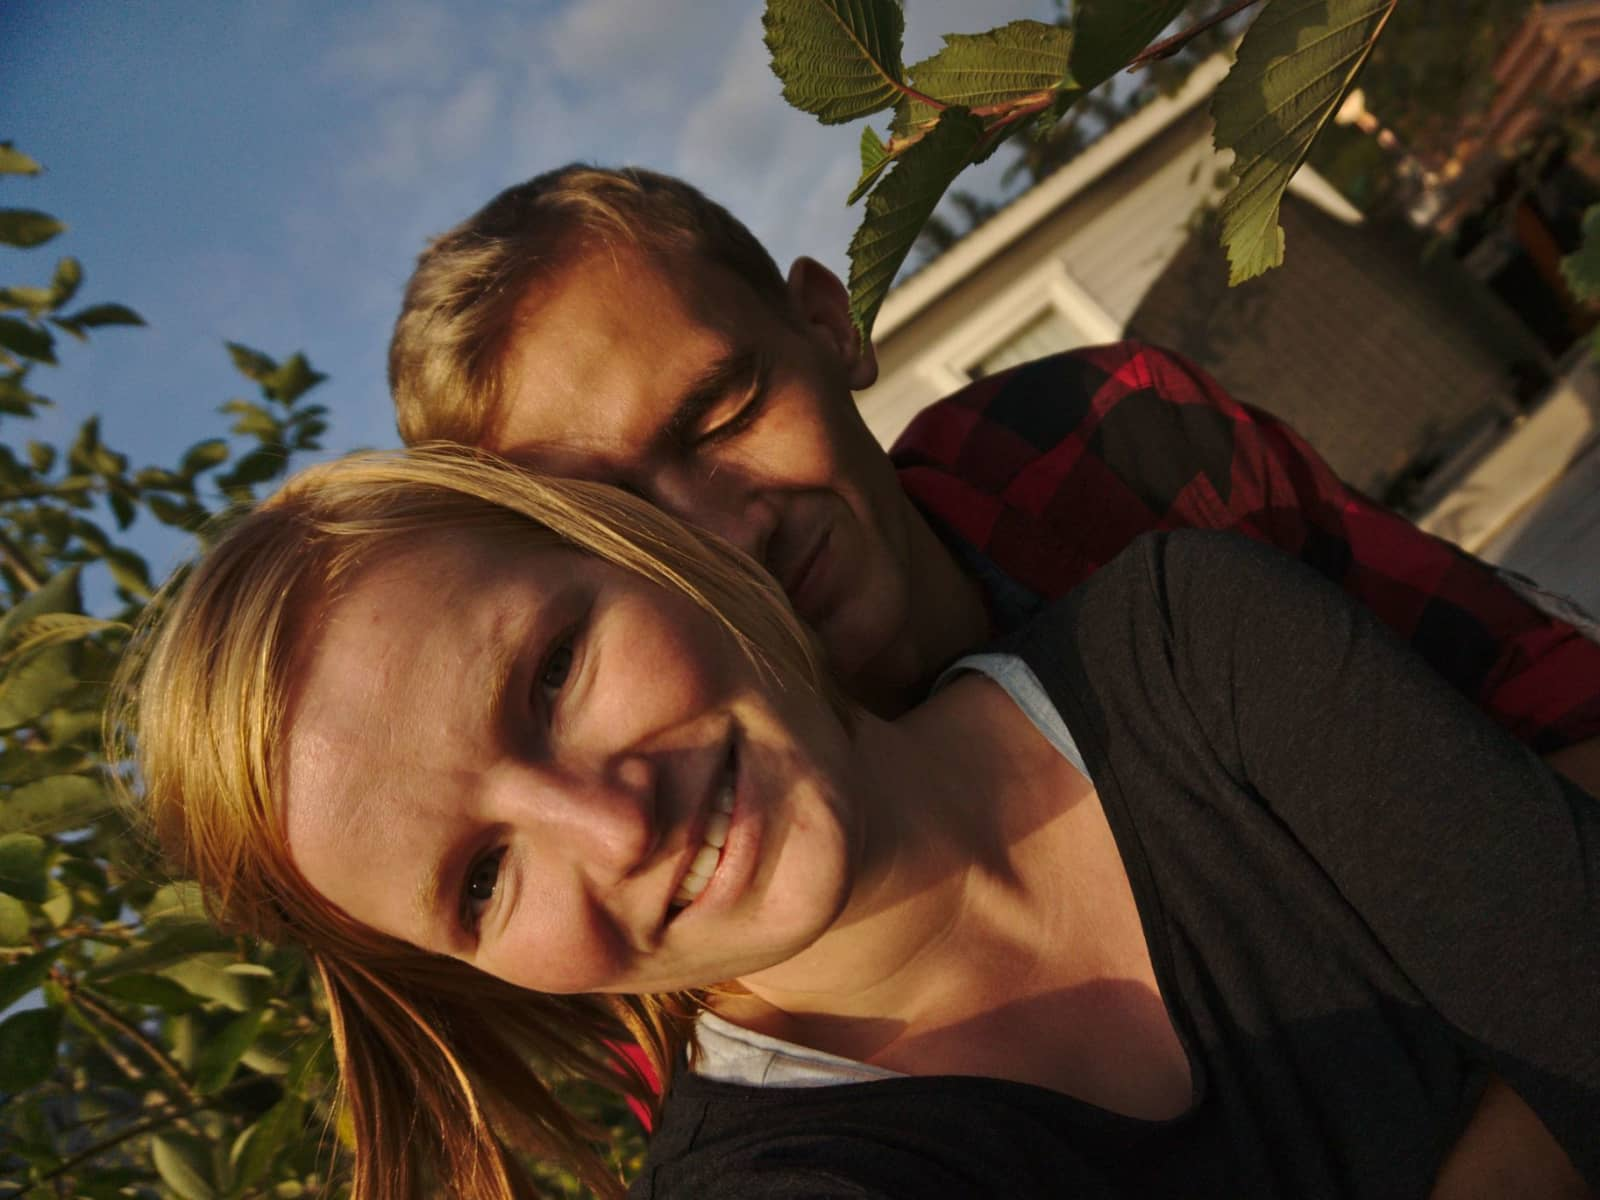 Luise & Adrian from Amsterdam, Netherlands